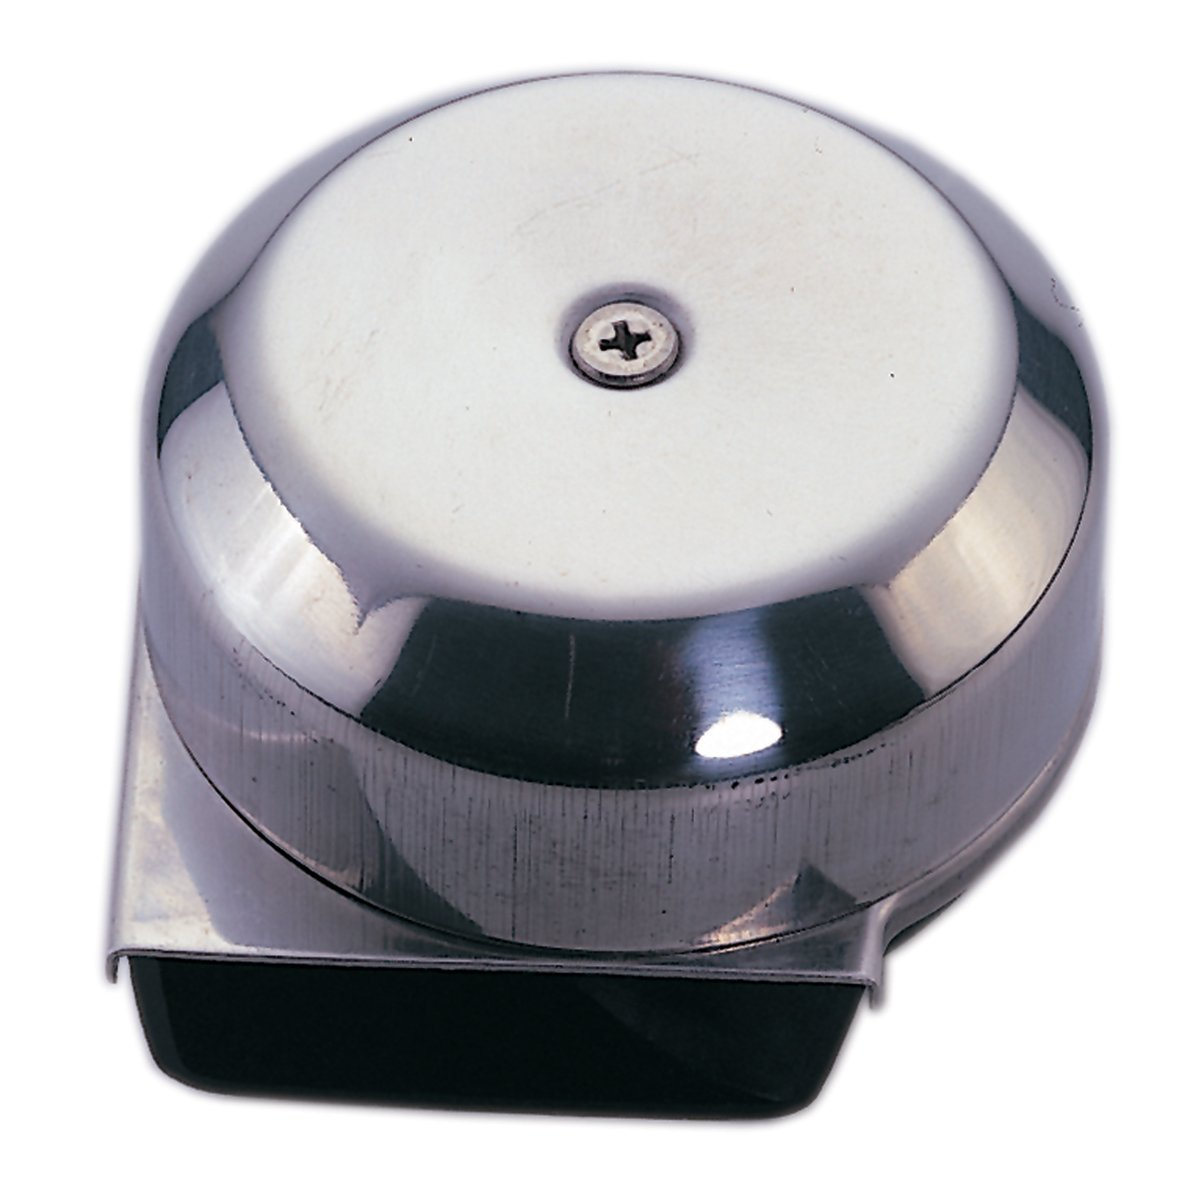 MARINE BOAT STAINLESS STEEL COMPACT ELECTRIC HORN 12V DIAMETER 3'' DEPTH 2''